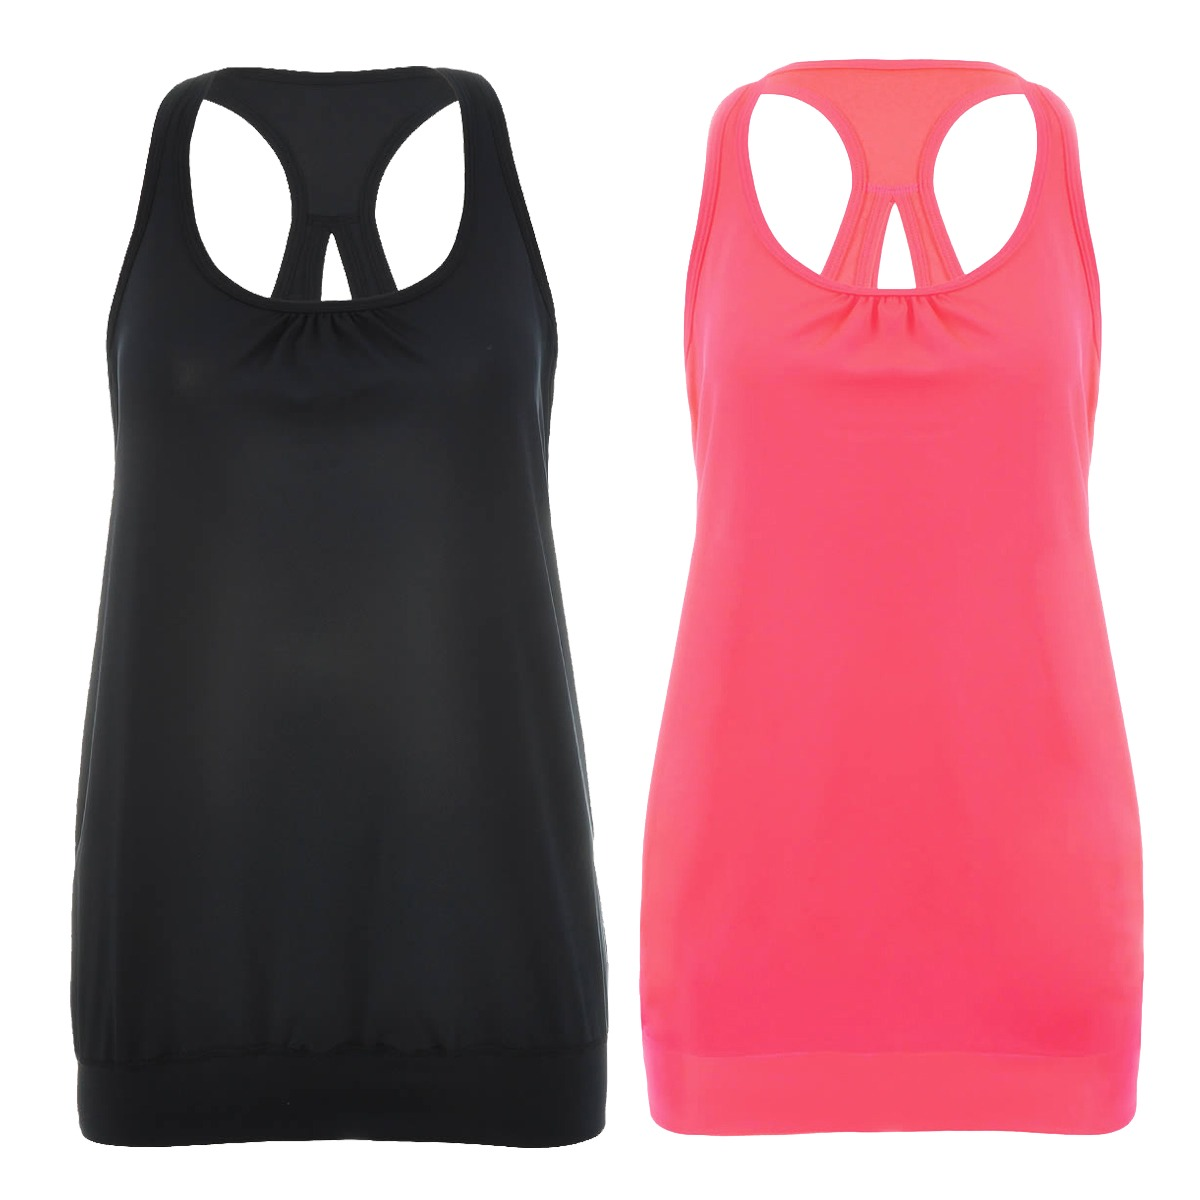 Women-039-s-2-Pack-Active-Racerback-Athletic-Sports-T-shirt-Long-Tank-Top